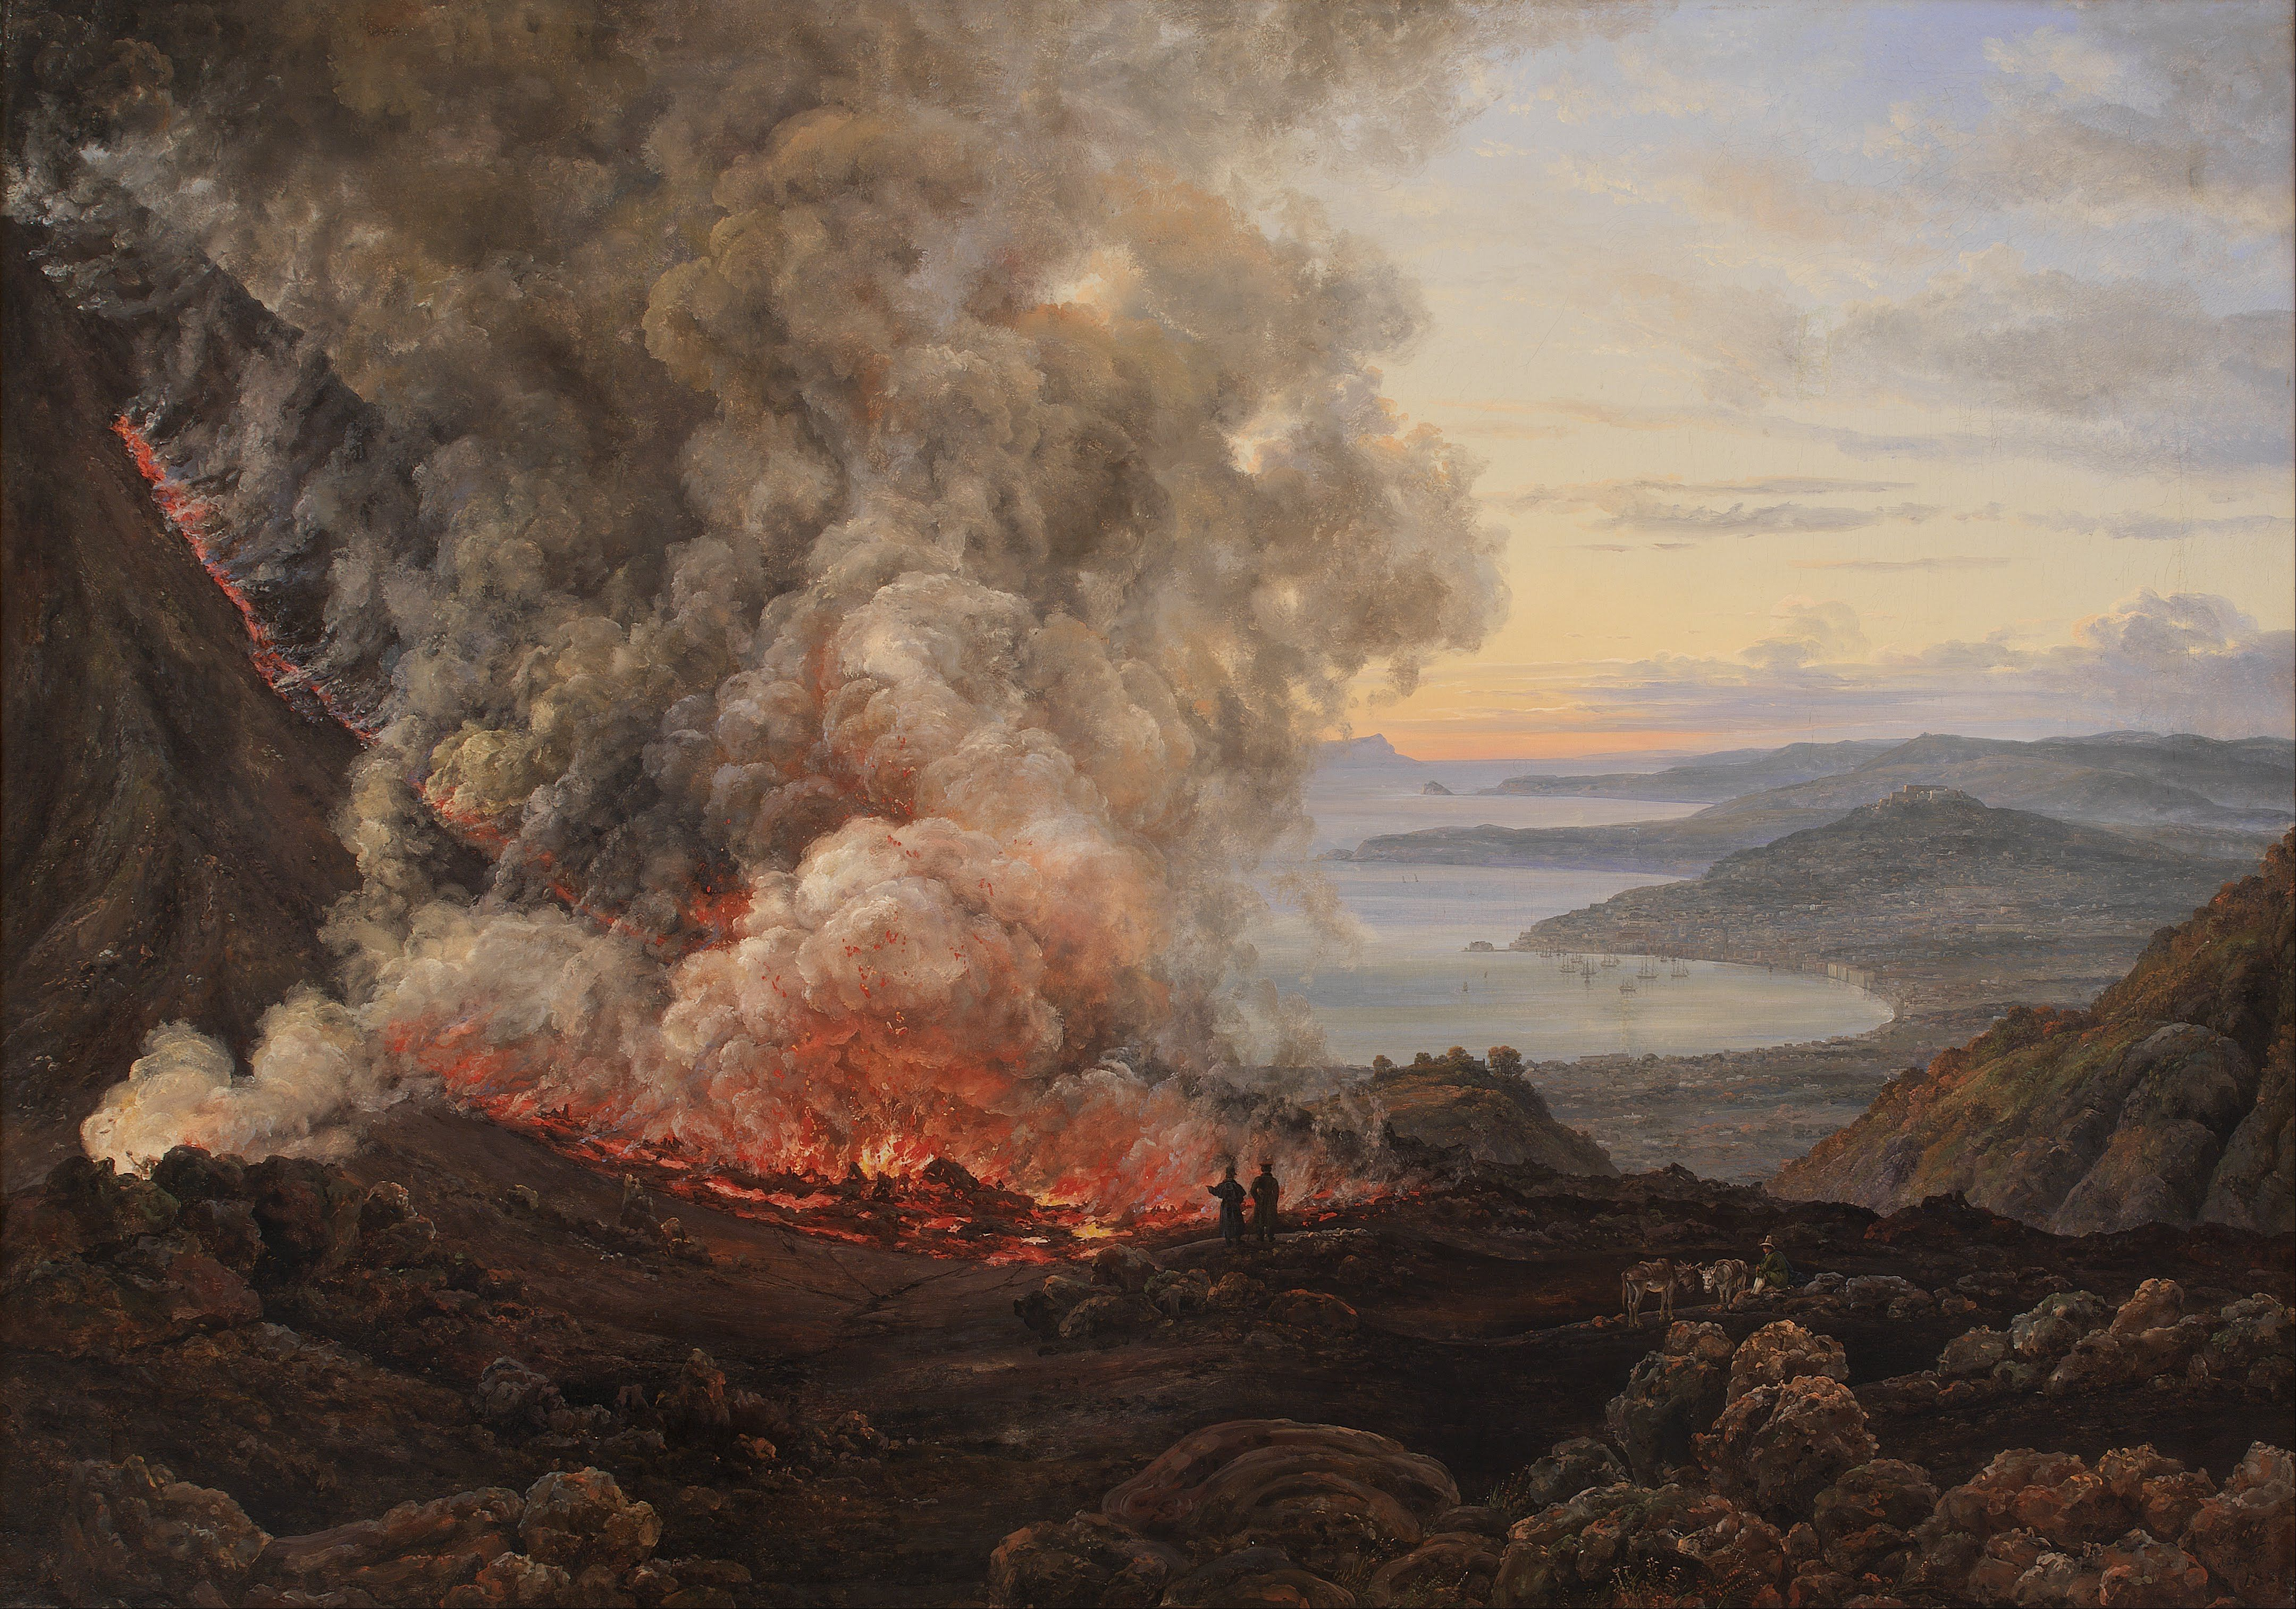 masters painting volcano - Google Search | The wave and Shore ...